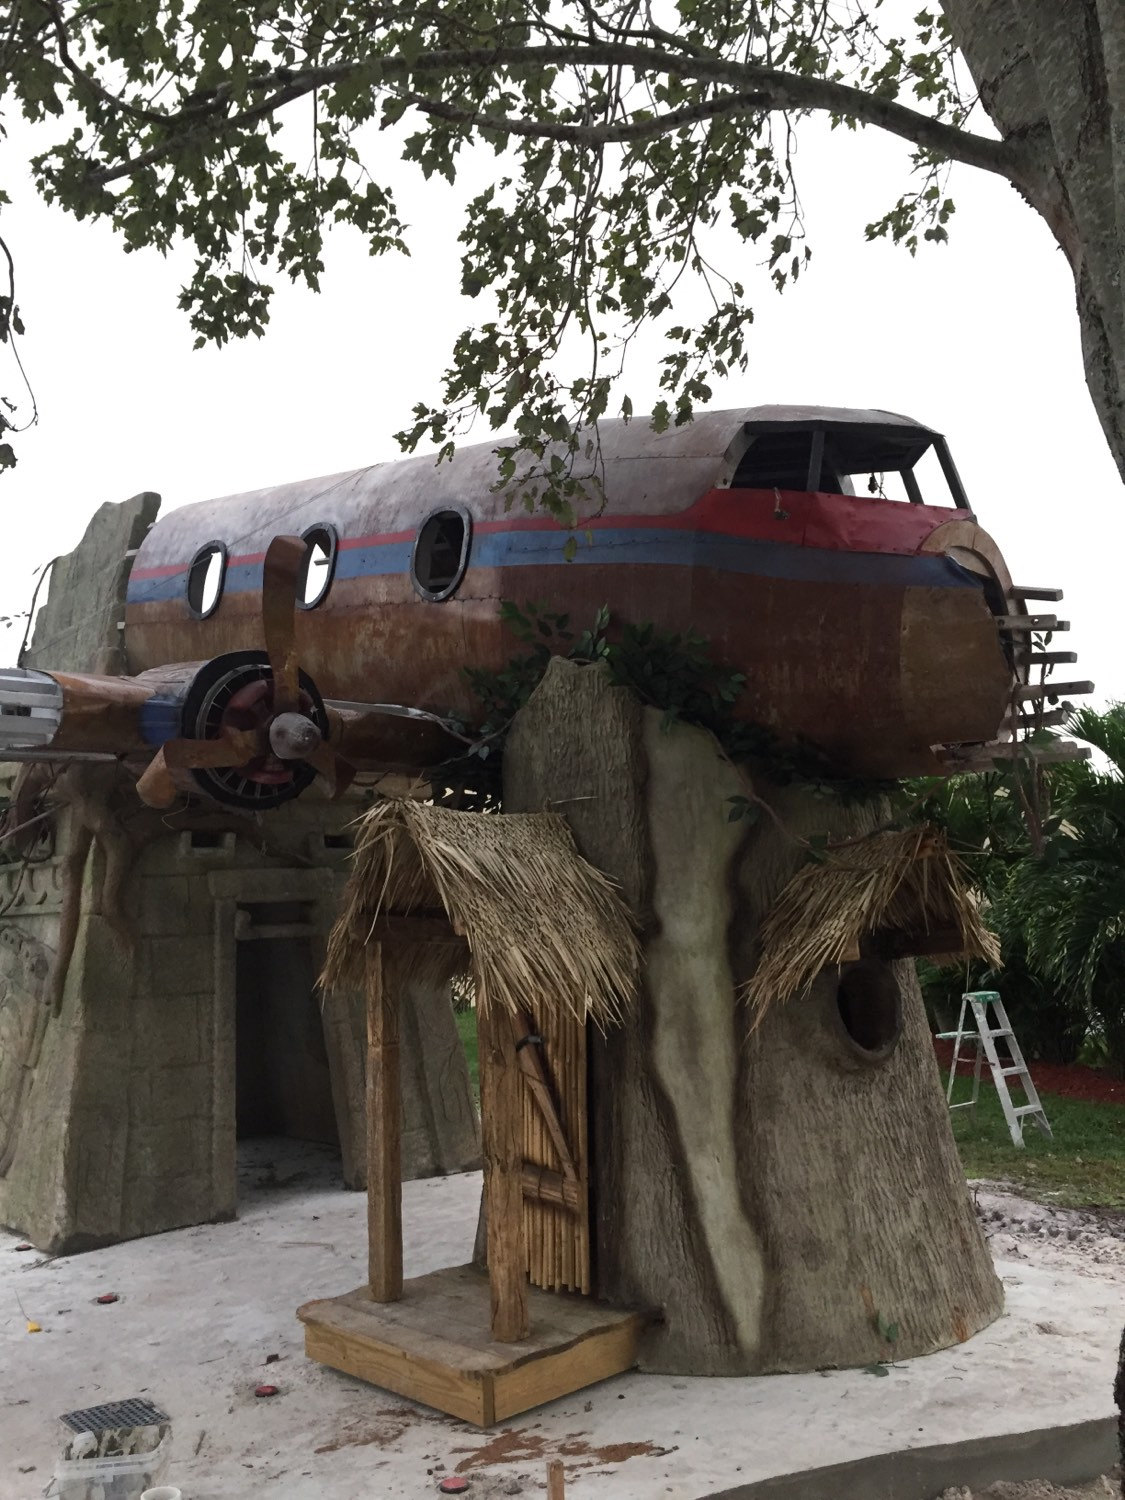 plane-wreckage-treehouse_gifts-for-kids